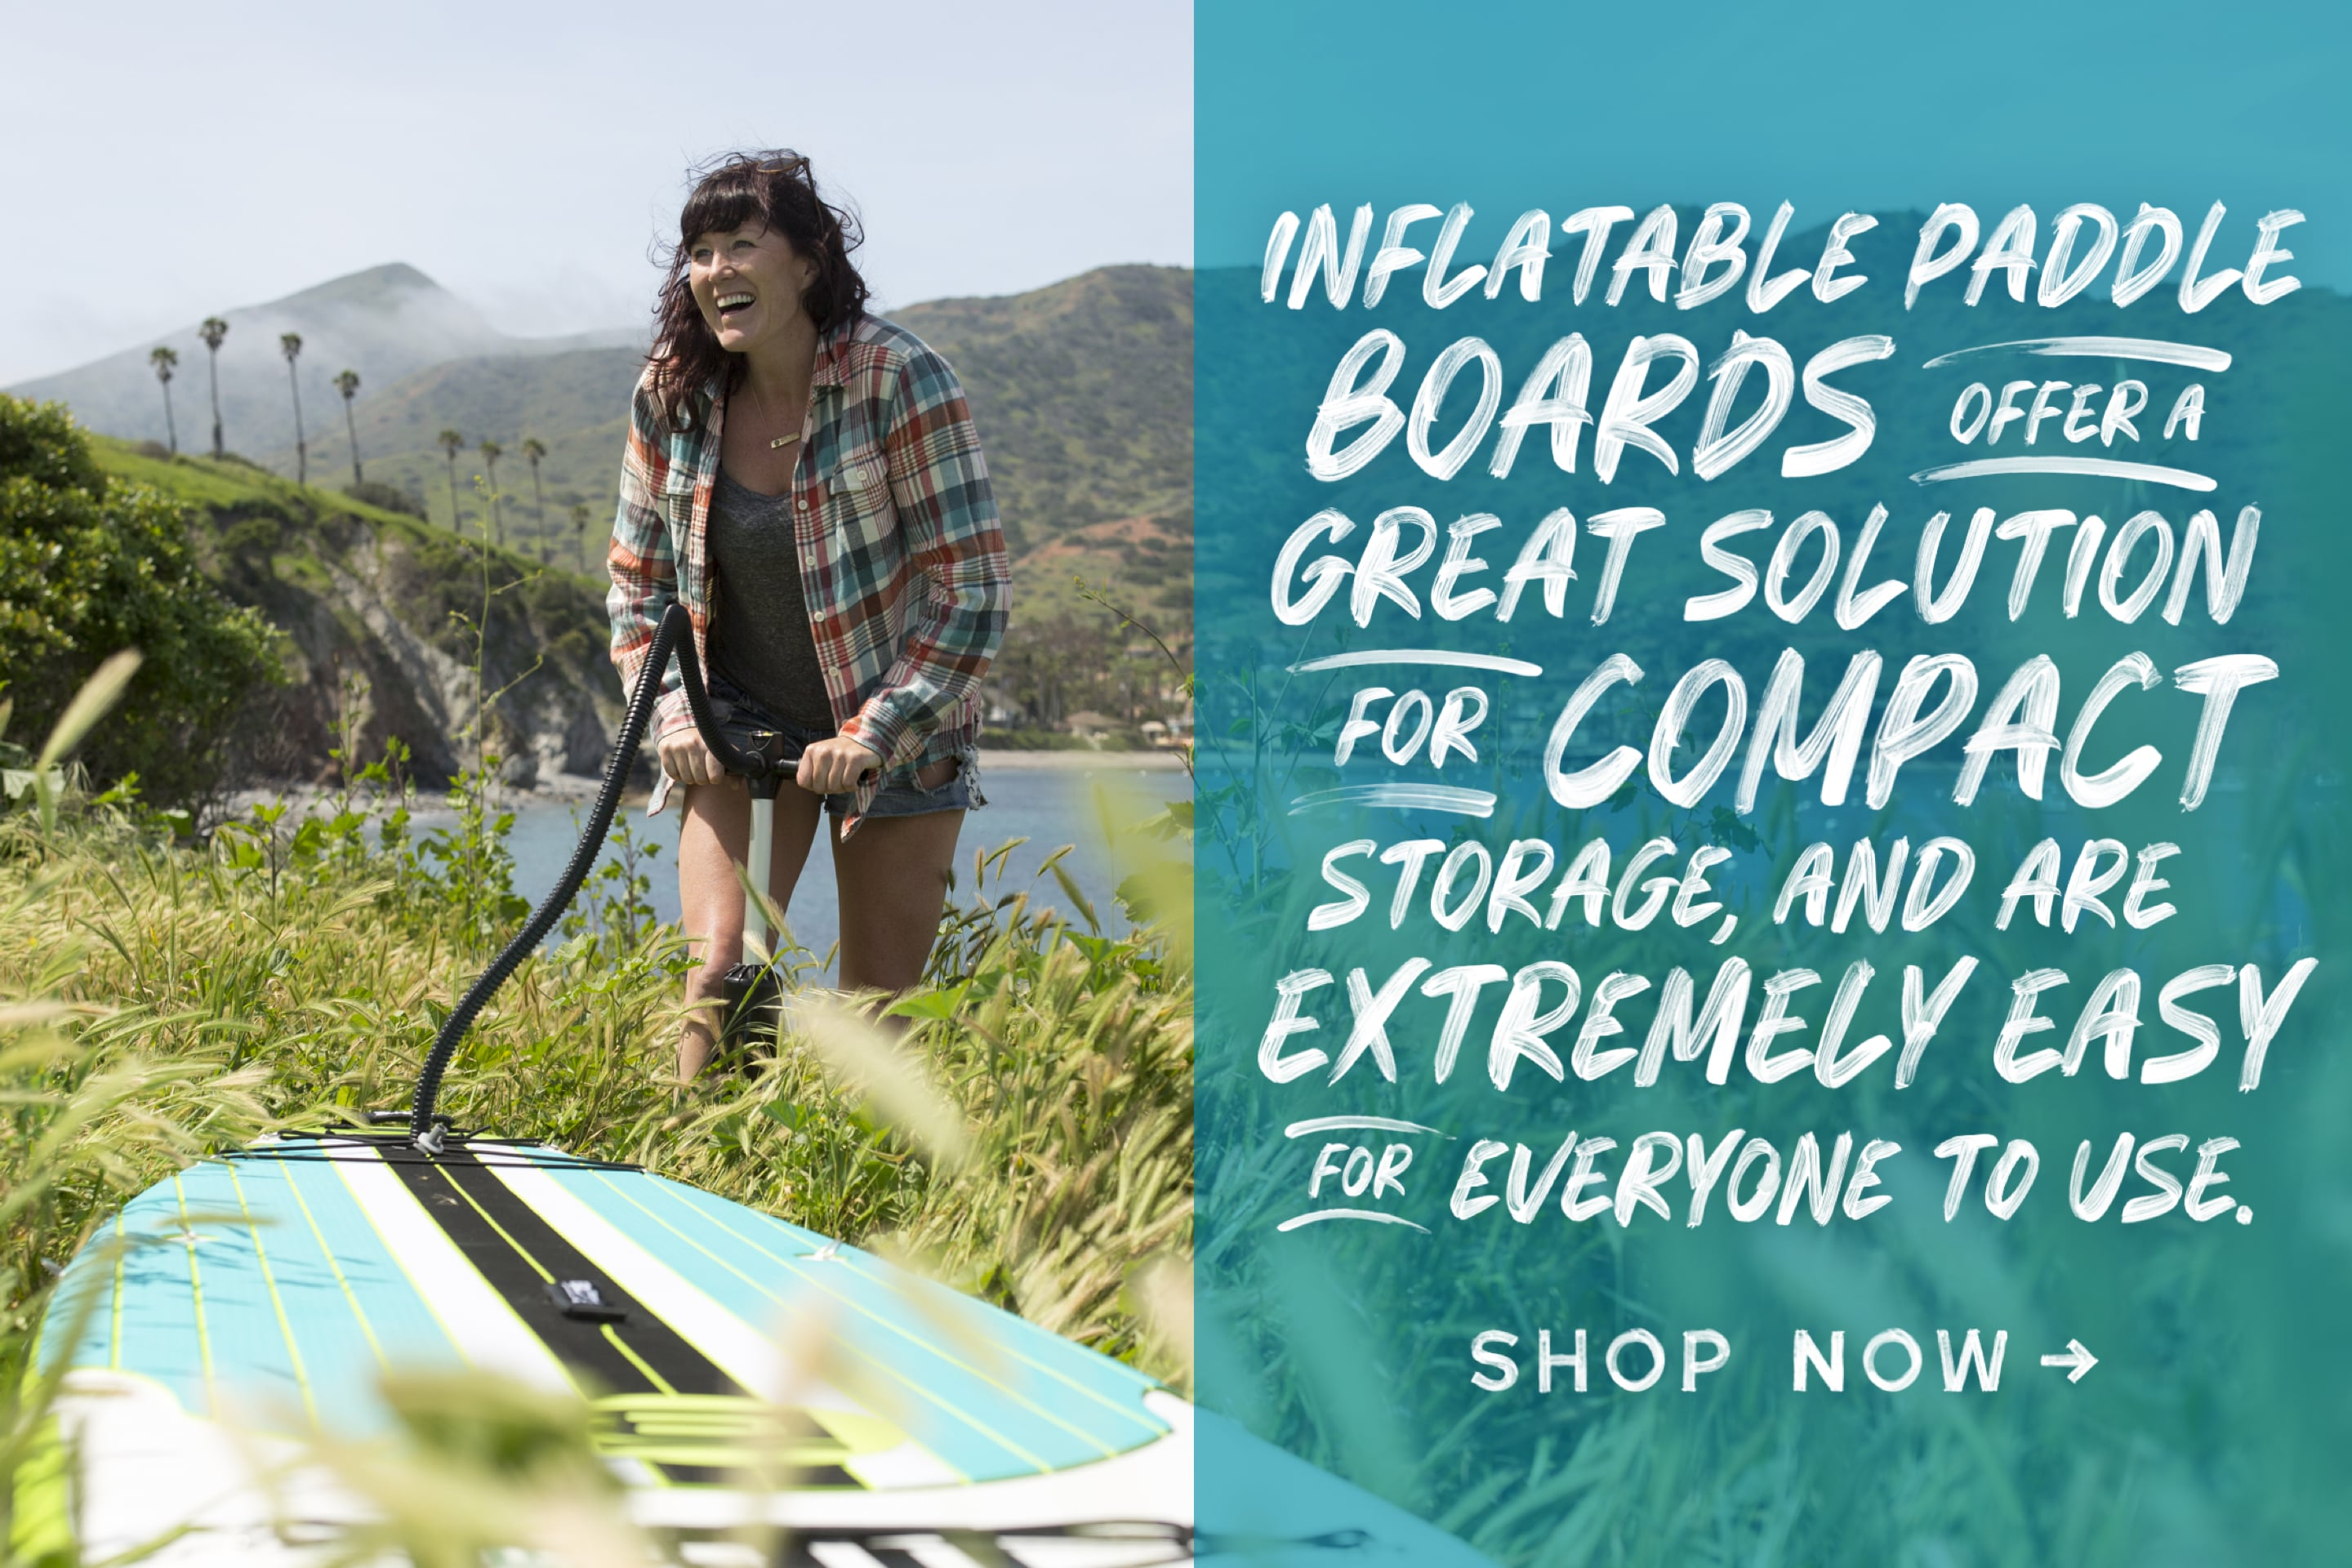 BOTE SUP Camping, Durable and Highly Portable Inflatable Paddle Boards